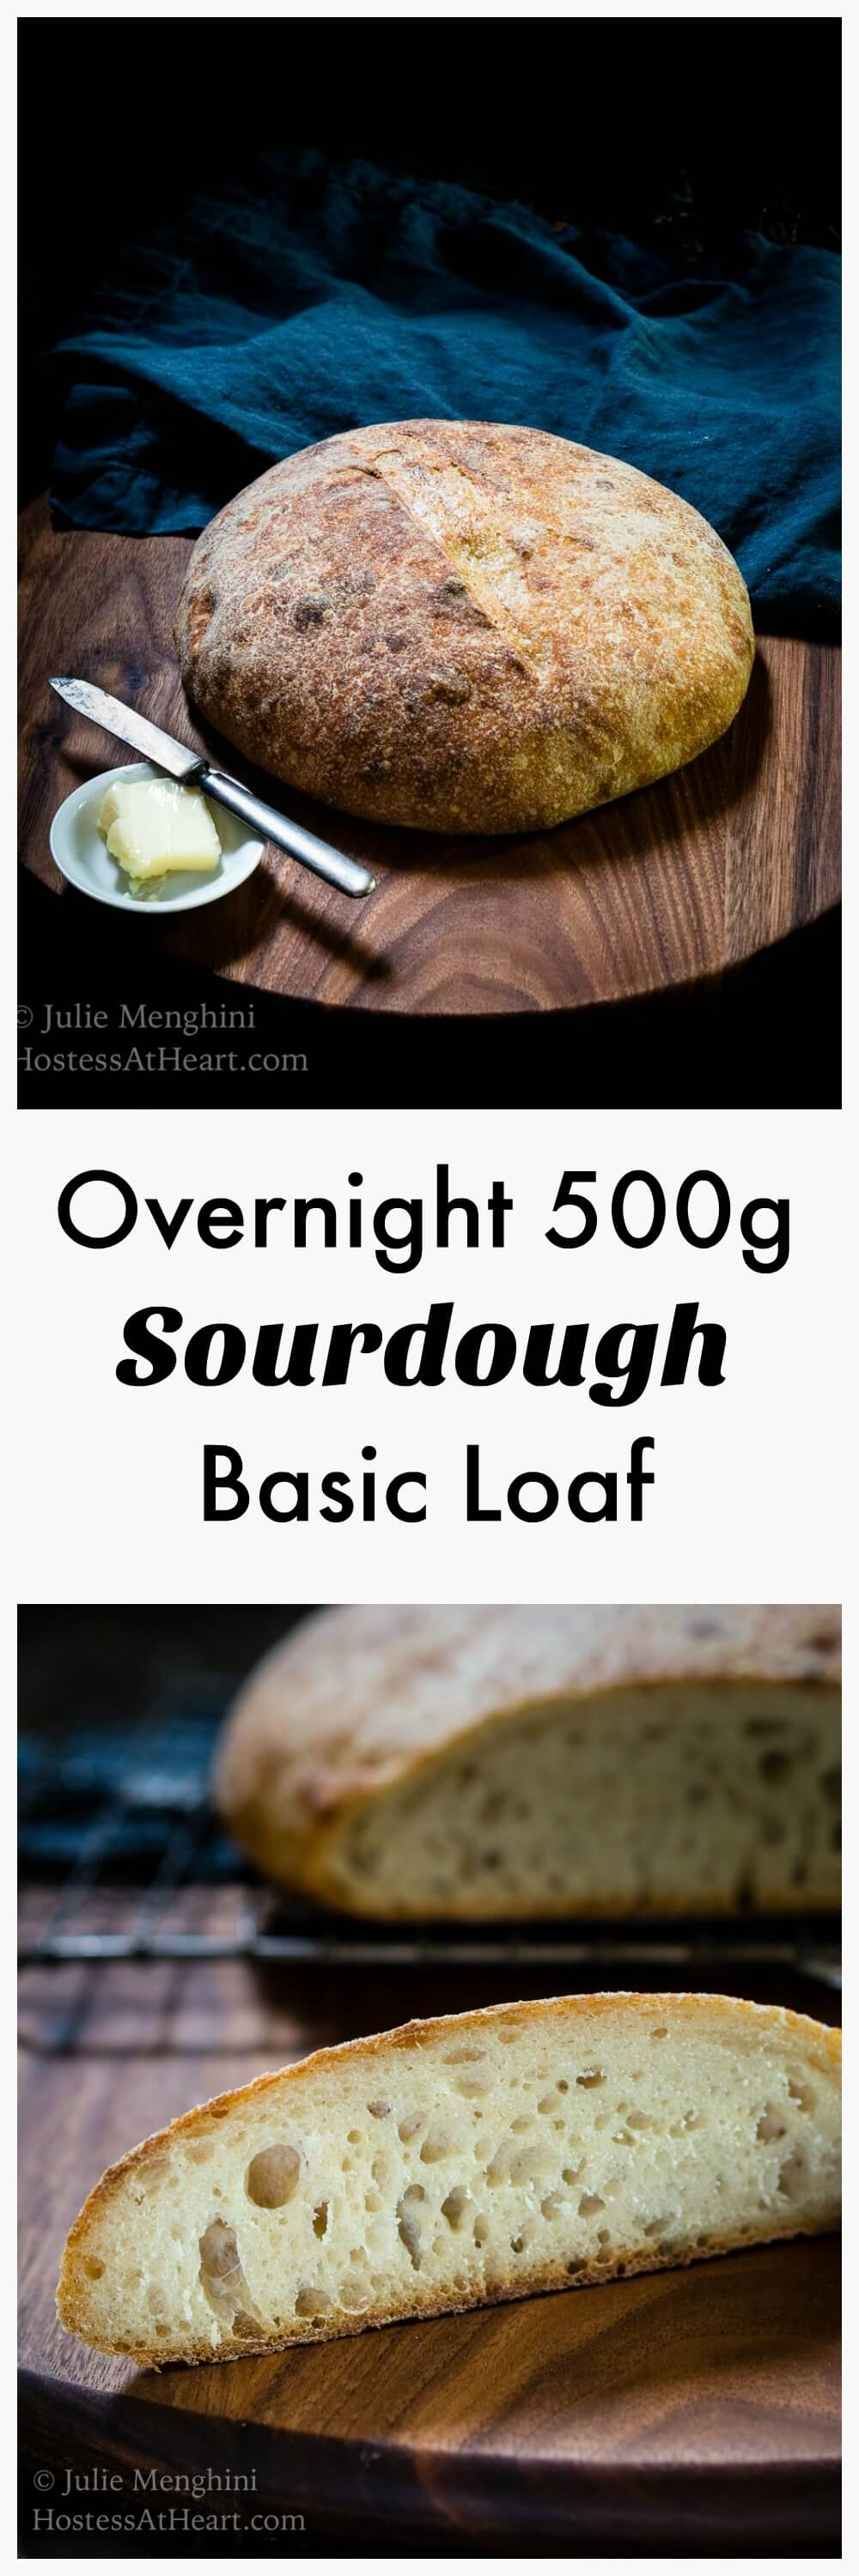 Overnight 500g Sourdough Bread recipe is a great basic recipe to make if you are just getting started baking Sourdough bread or have been at it for years. | HostessAtHeart.com #bread, #breadrecipes, #homemadebread #baking